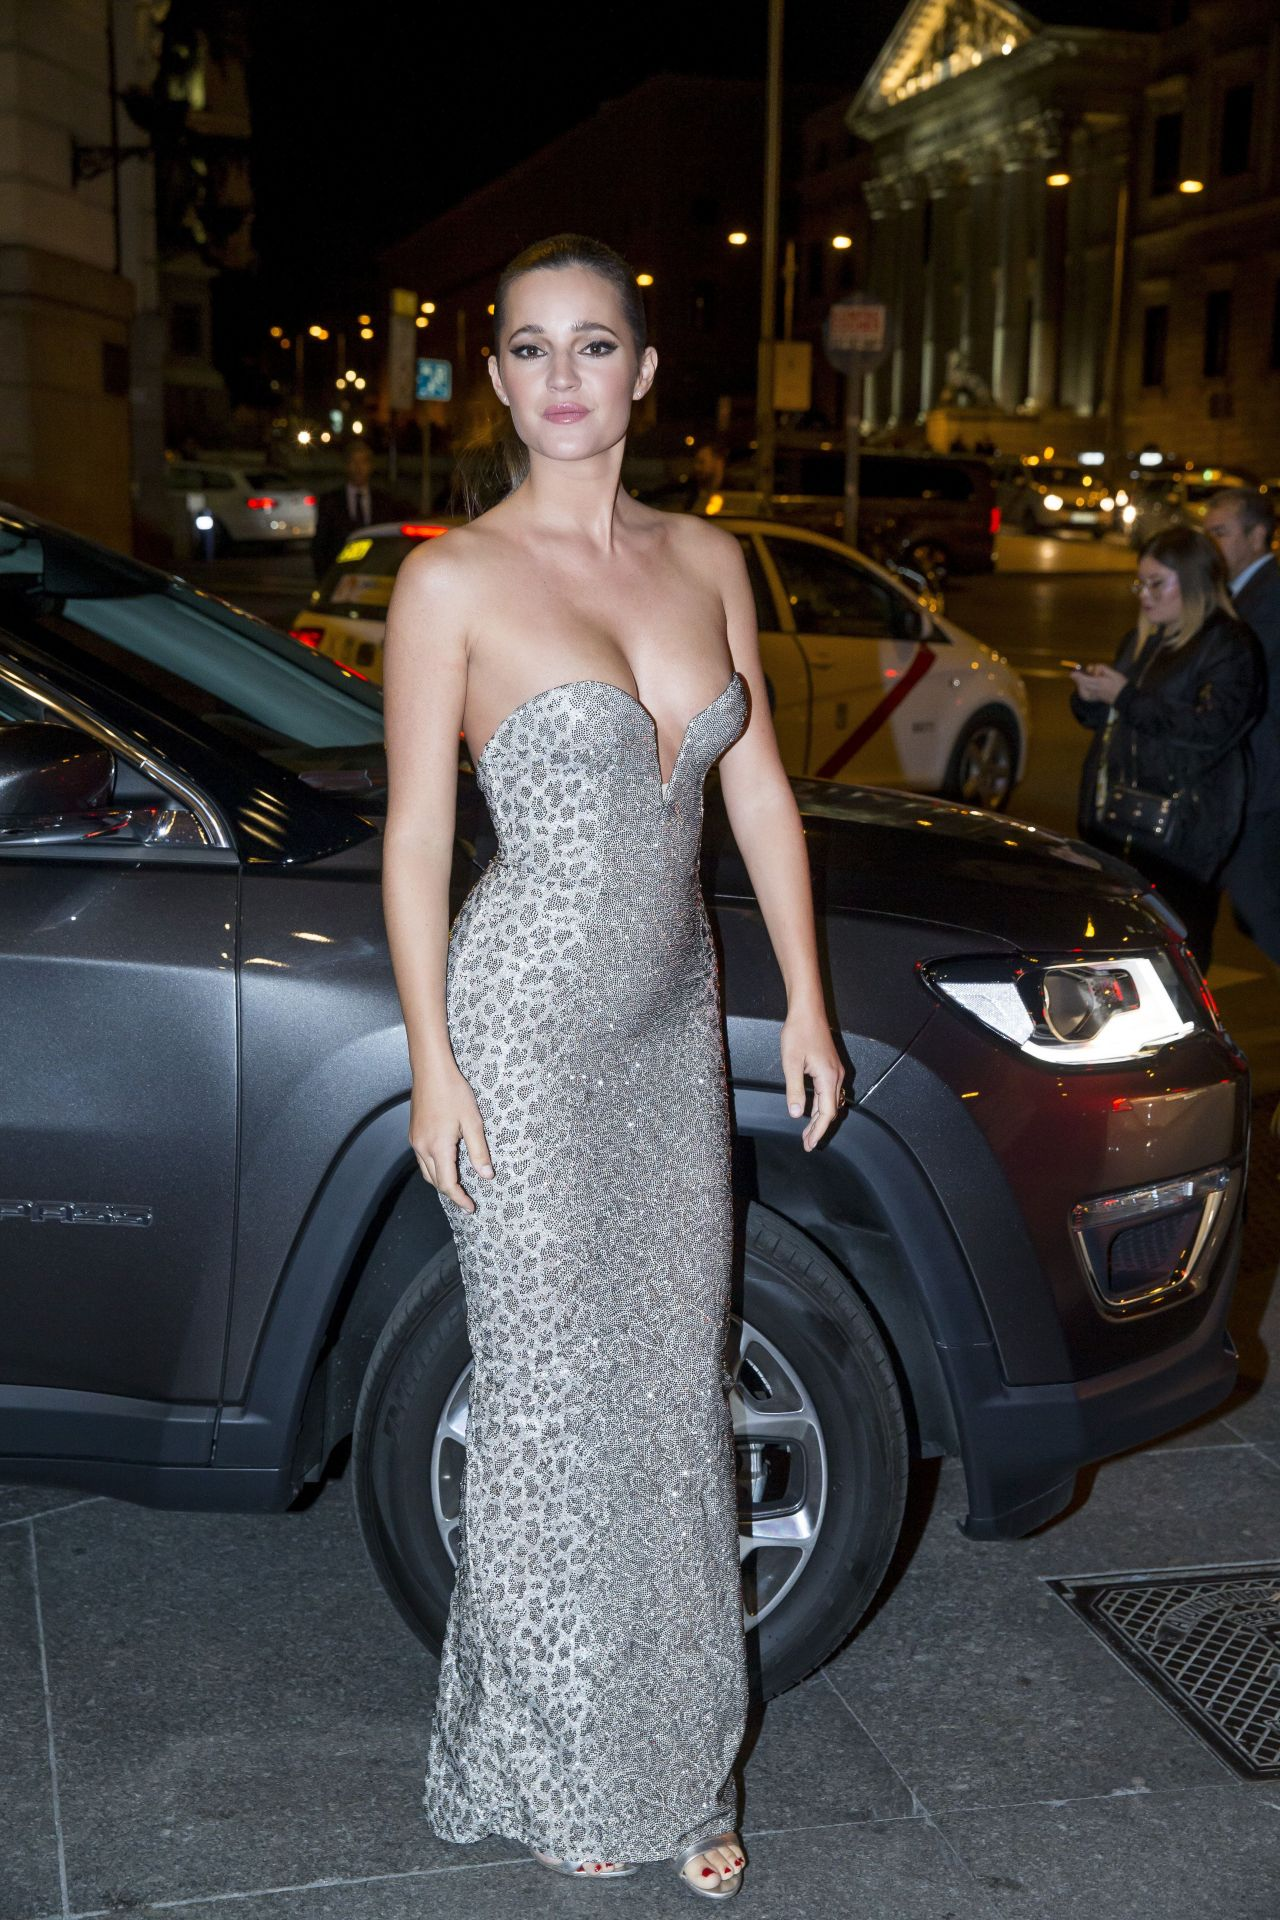 Malena Costa Gq 2017 Men Of The Year Awards In Madrid